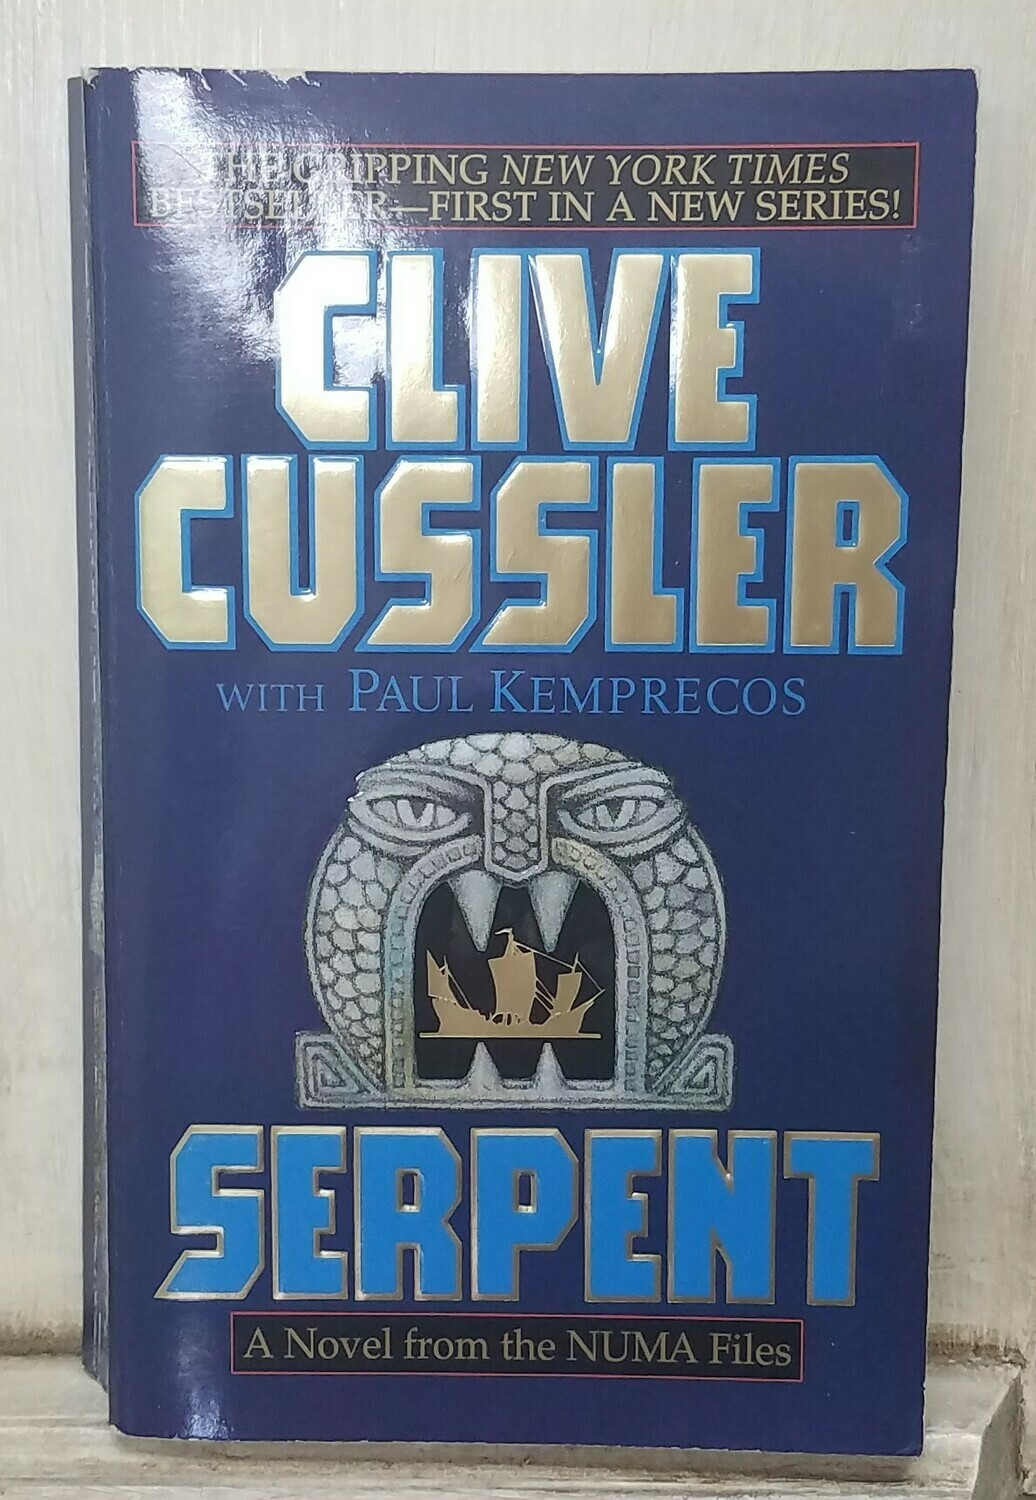 Serpent by Clive Cussler with Paul Kemprecos